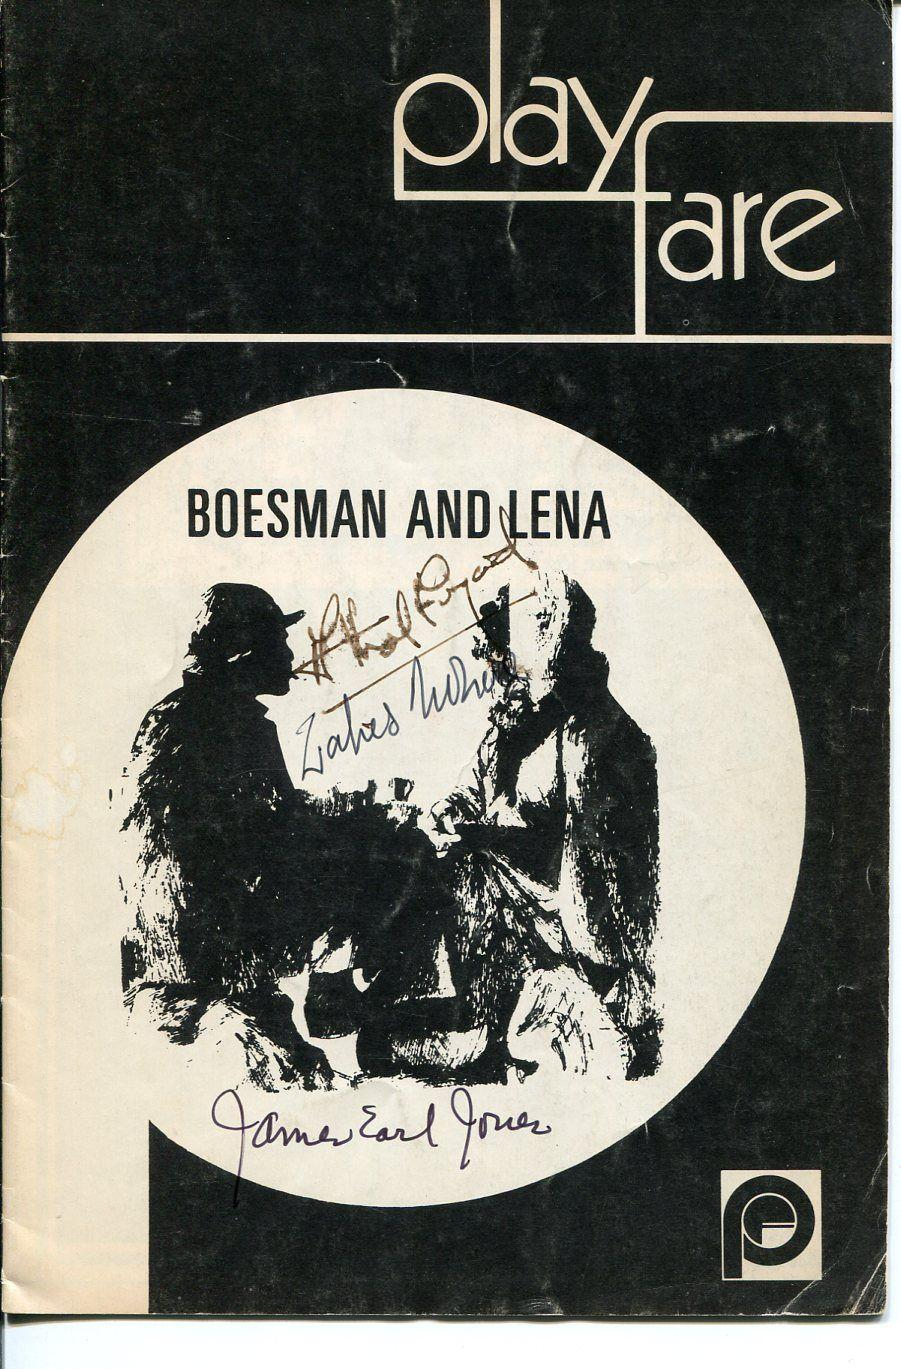 James Earl Jones Athol Fugard Zakes Mokae Boesman Lena Signed Autograph Playbill